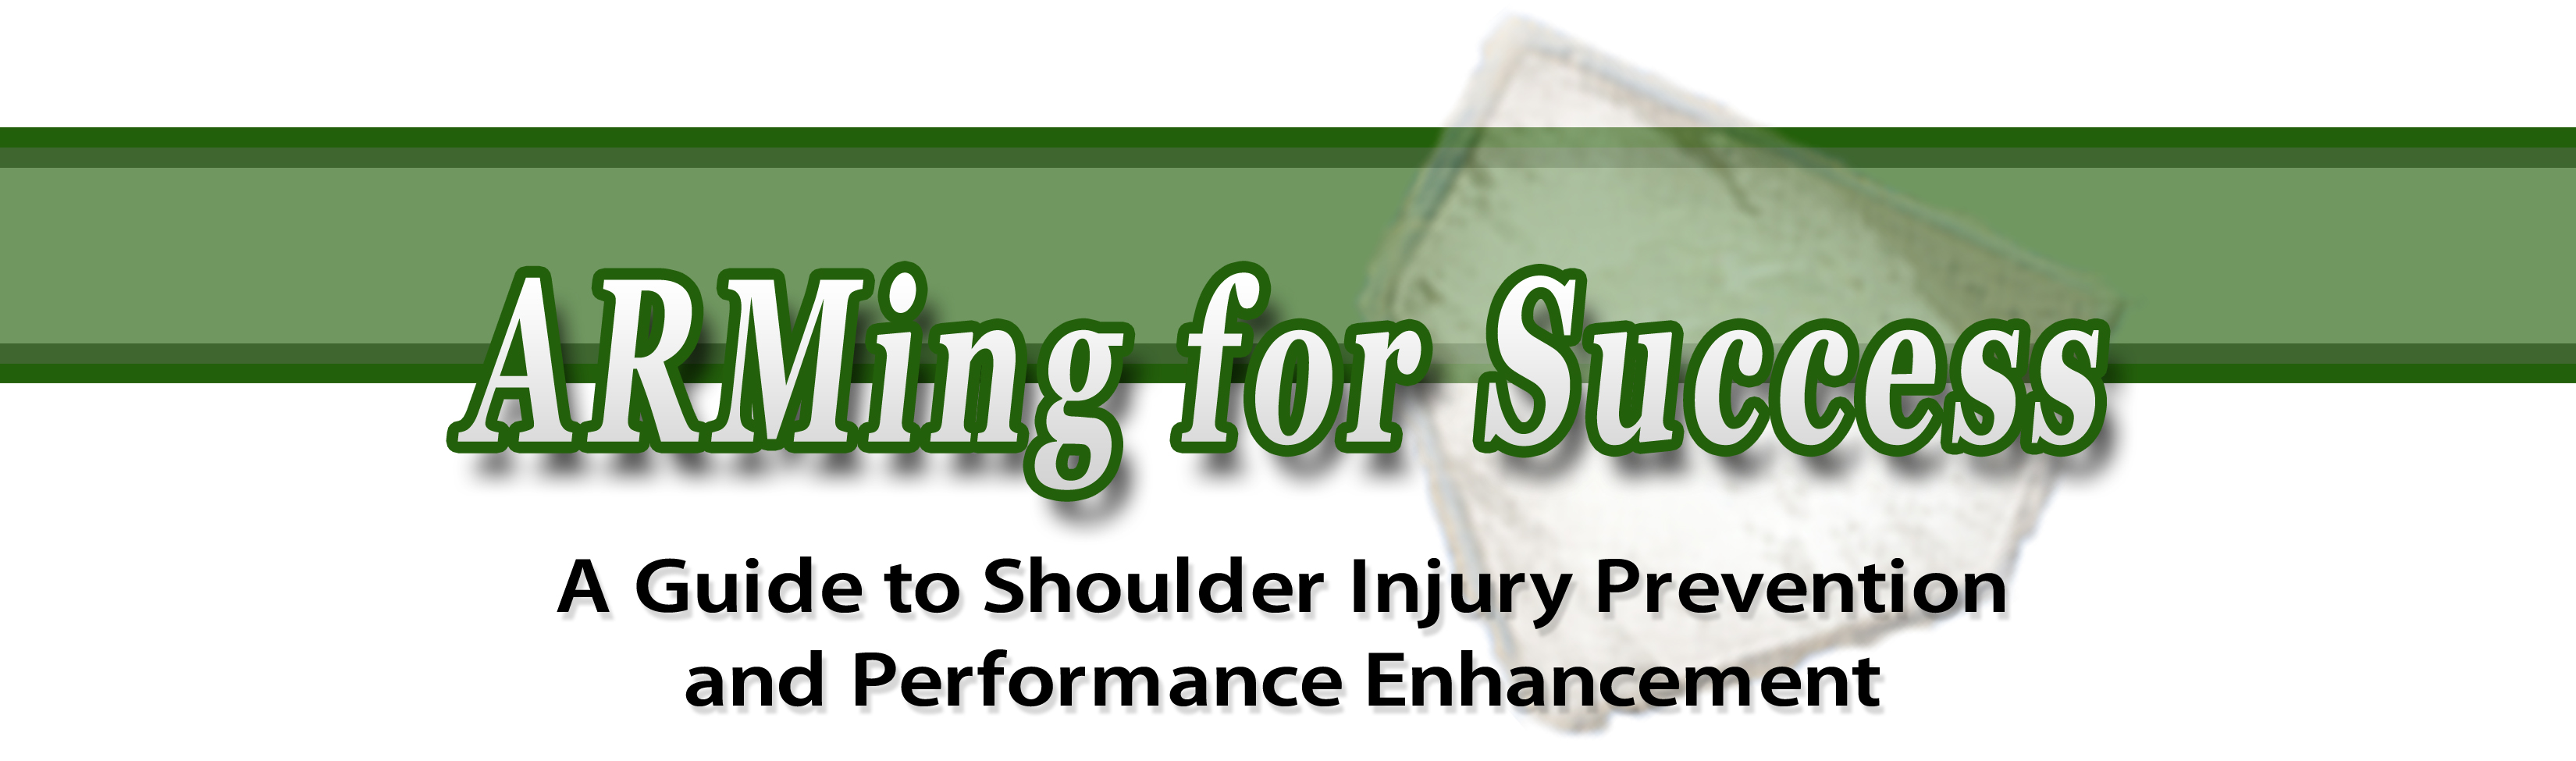 ARMing for Success: A Guide to Shoulder Injury Prevention and Performance Enhancement